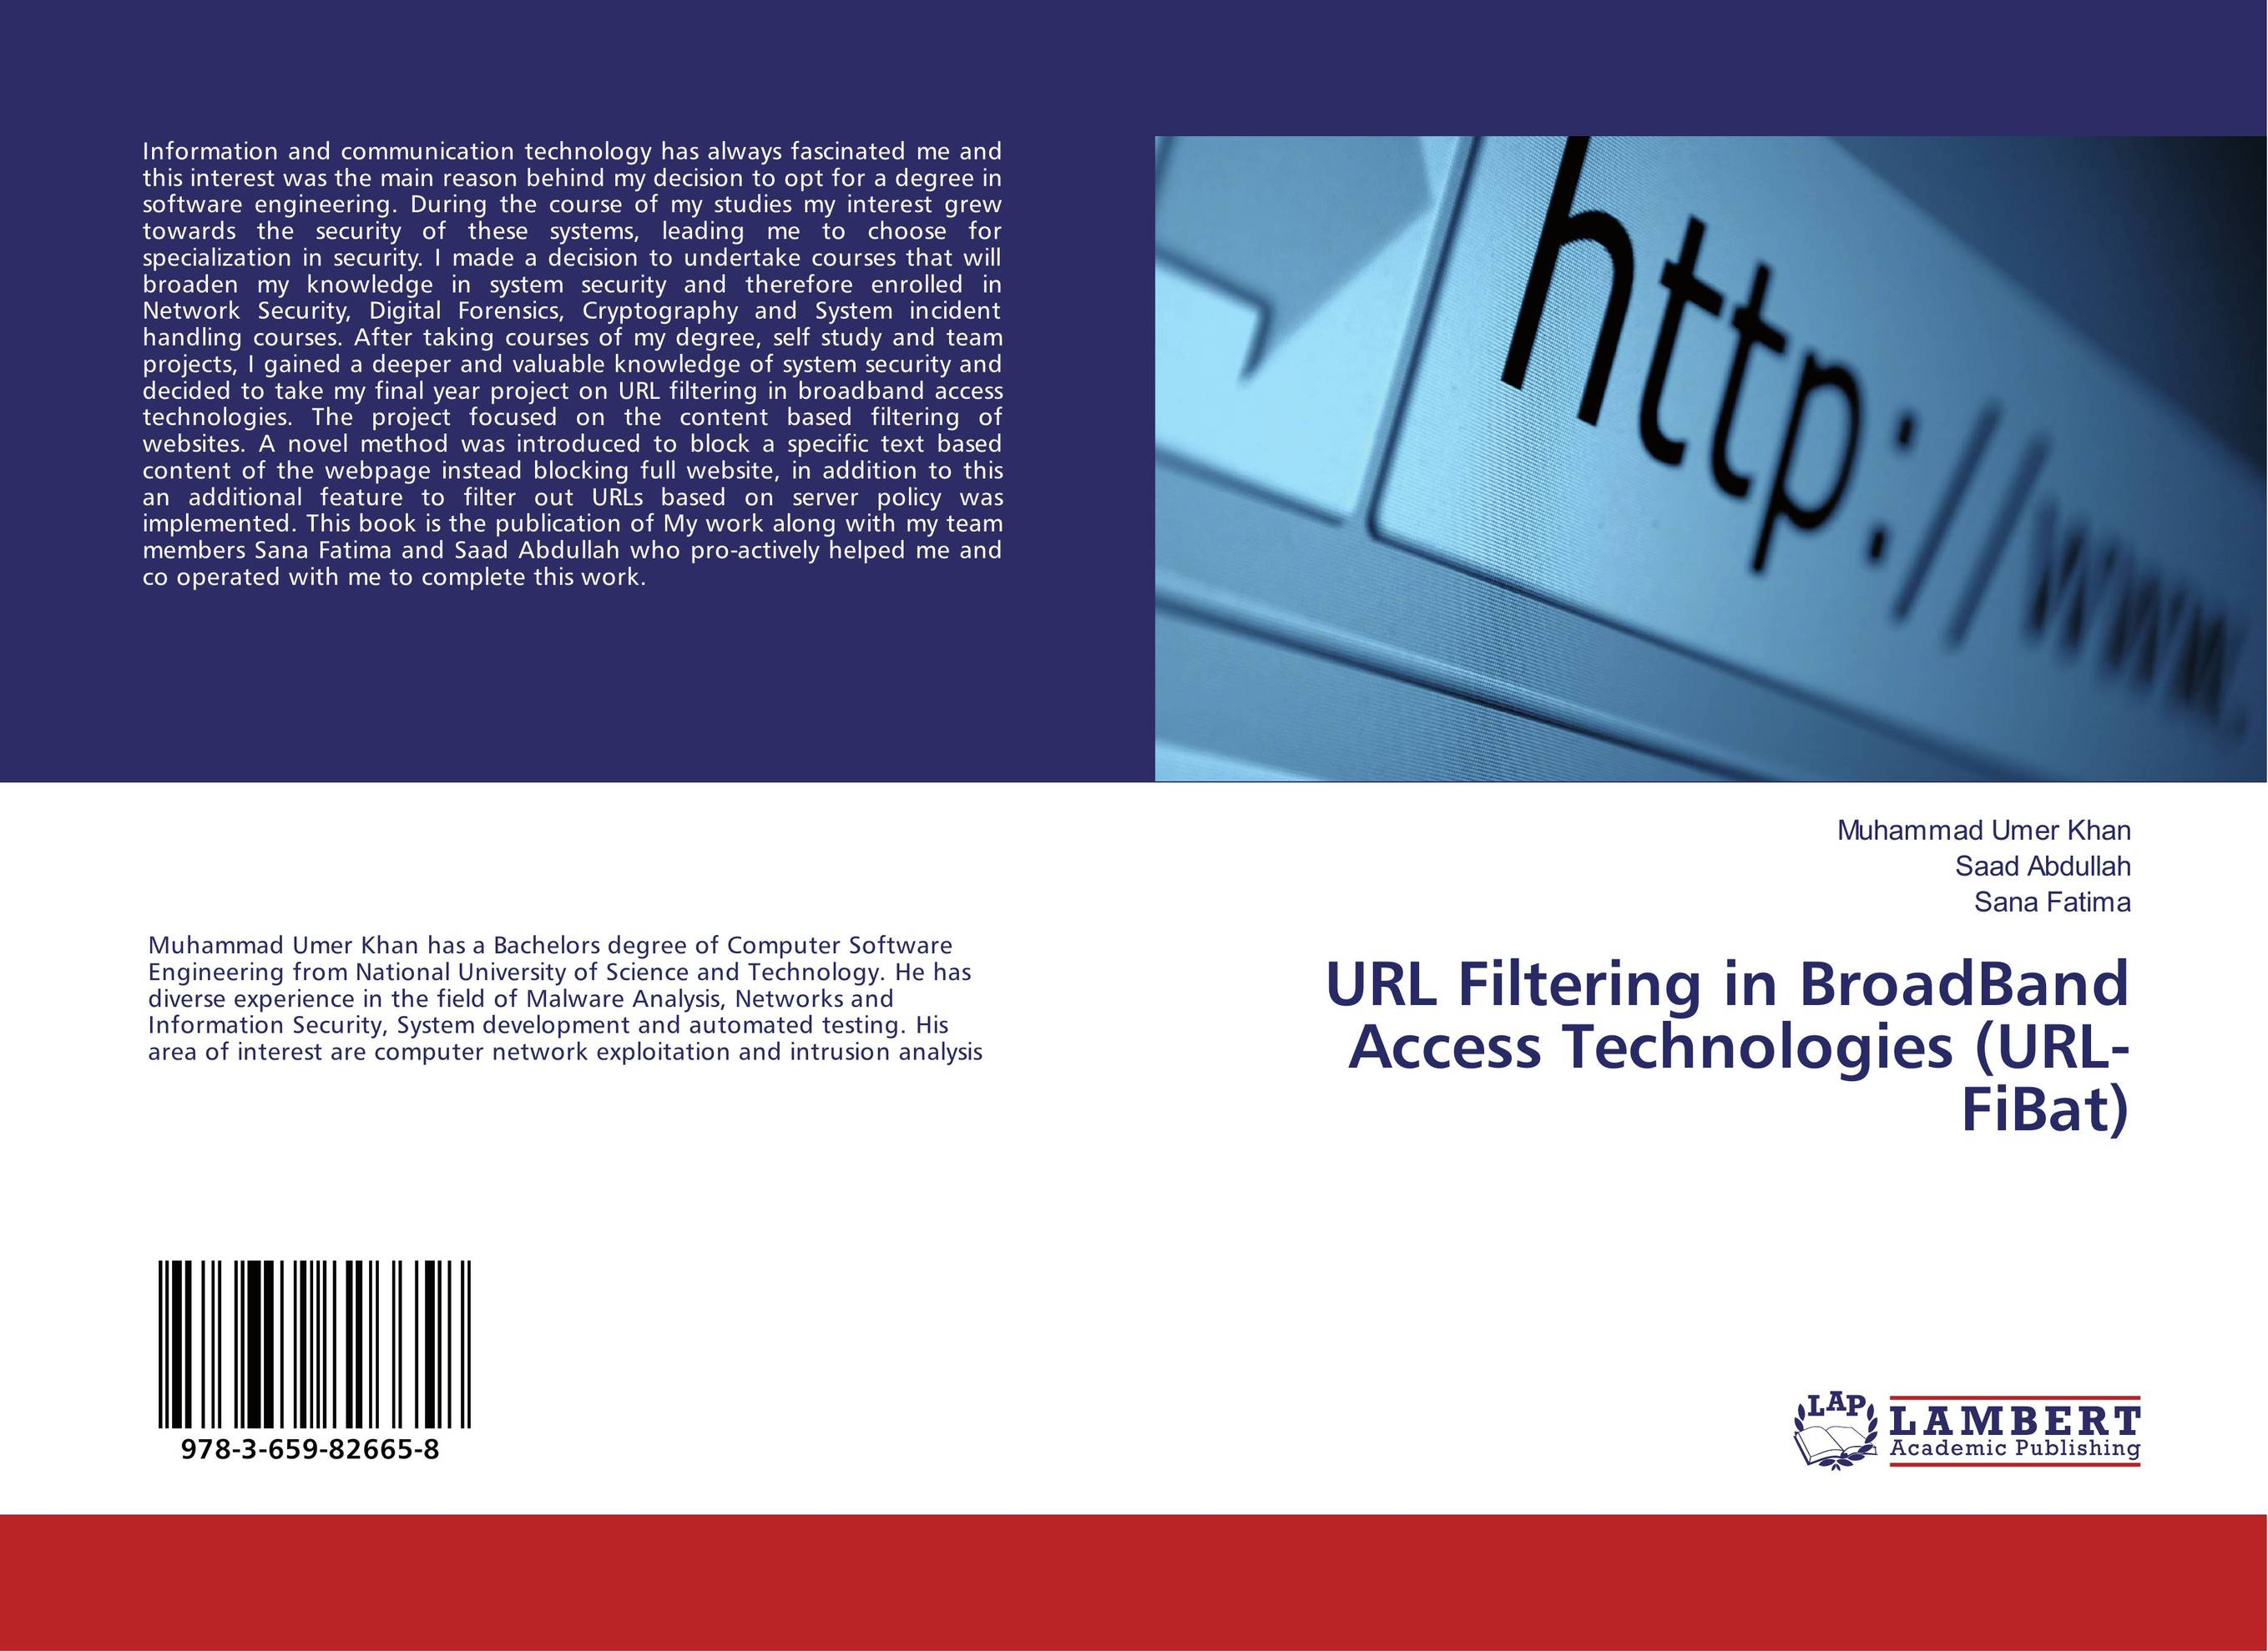 URL Filtering in BroadBand Access Technologies (URL-FiBat) me and my place in space